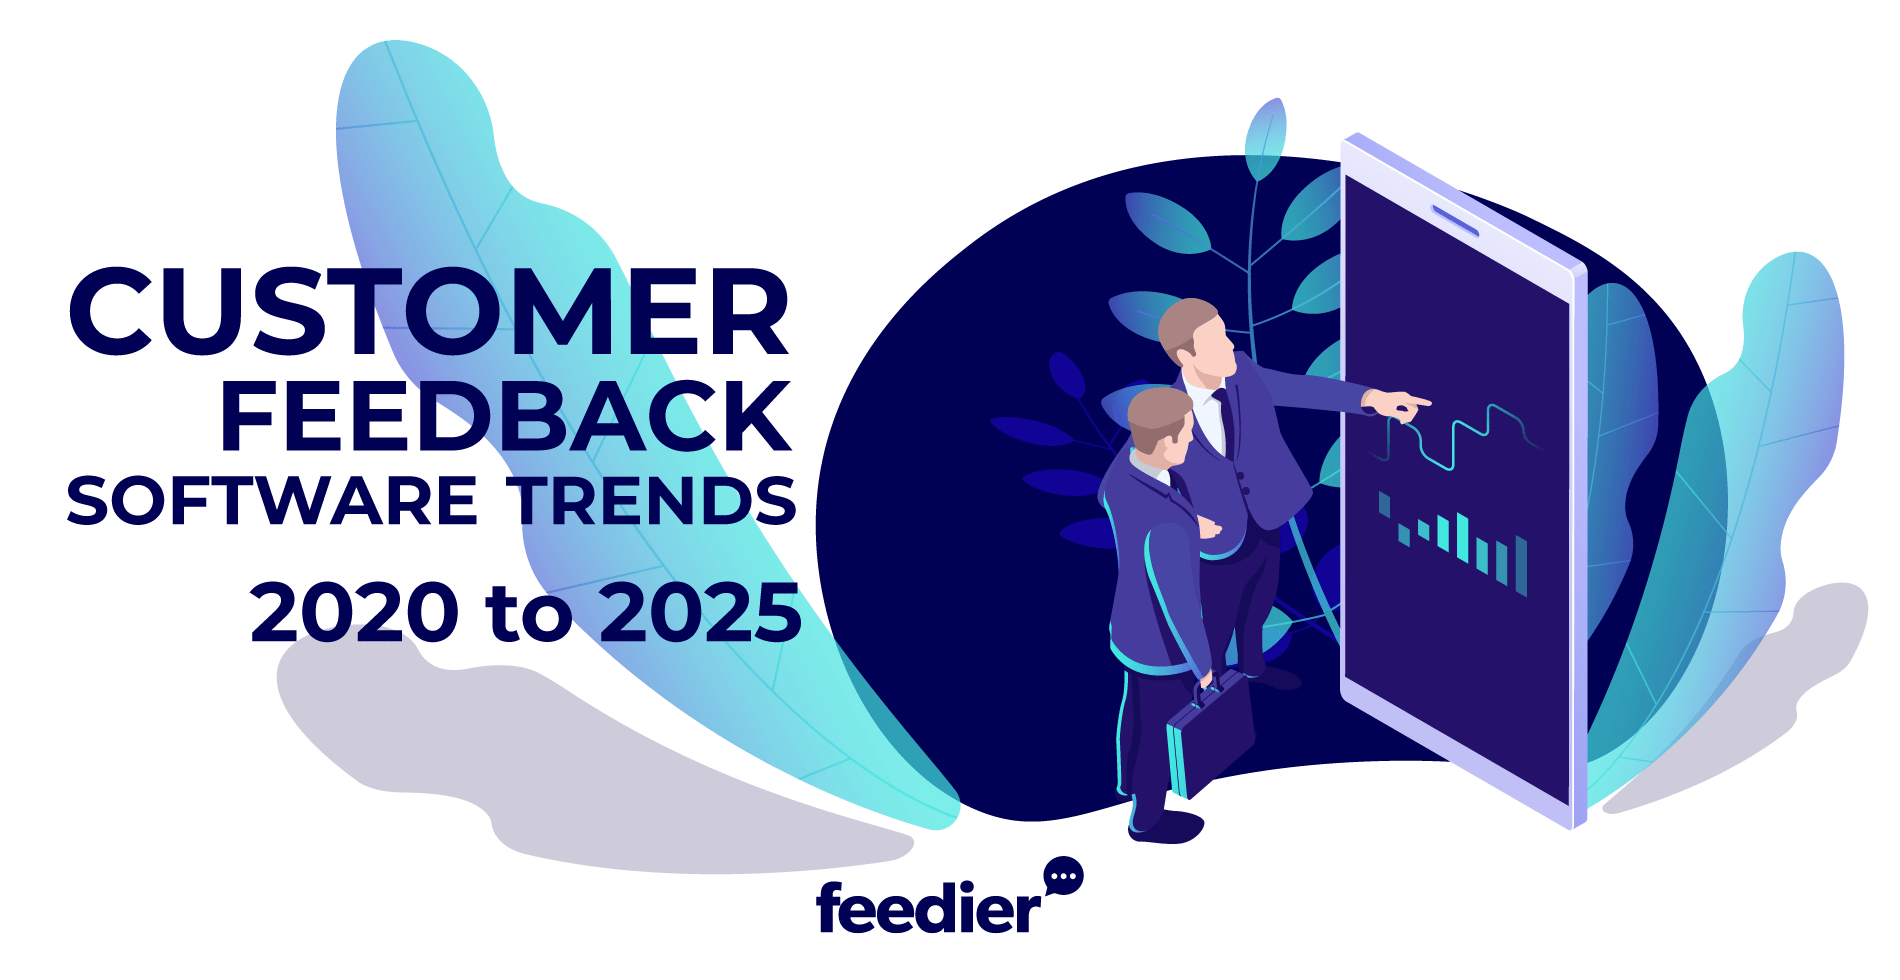 Feedback software trends